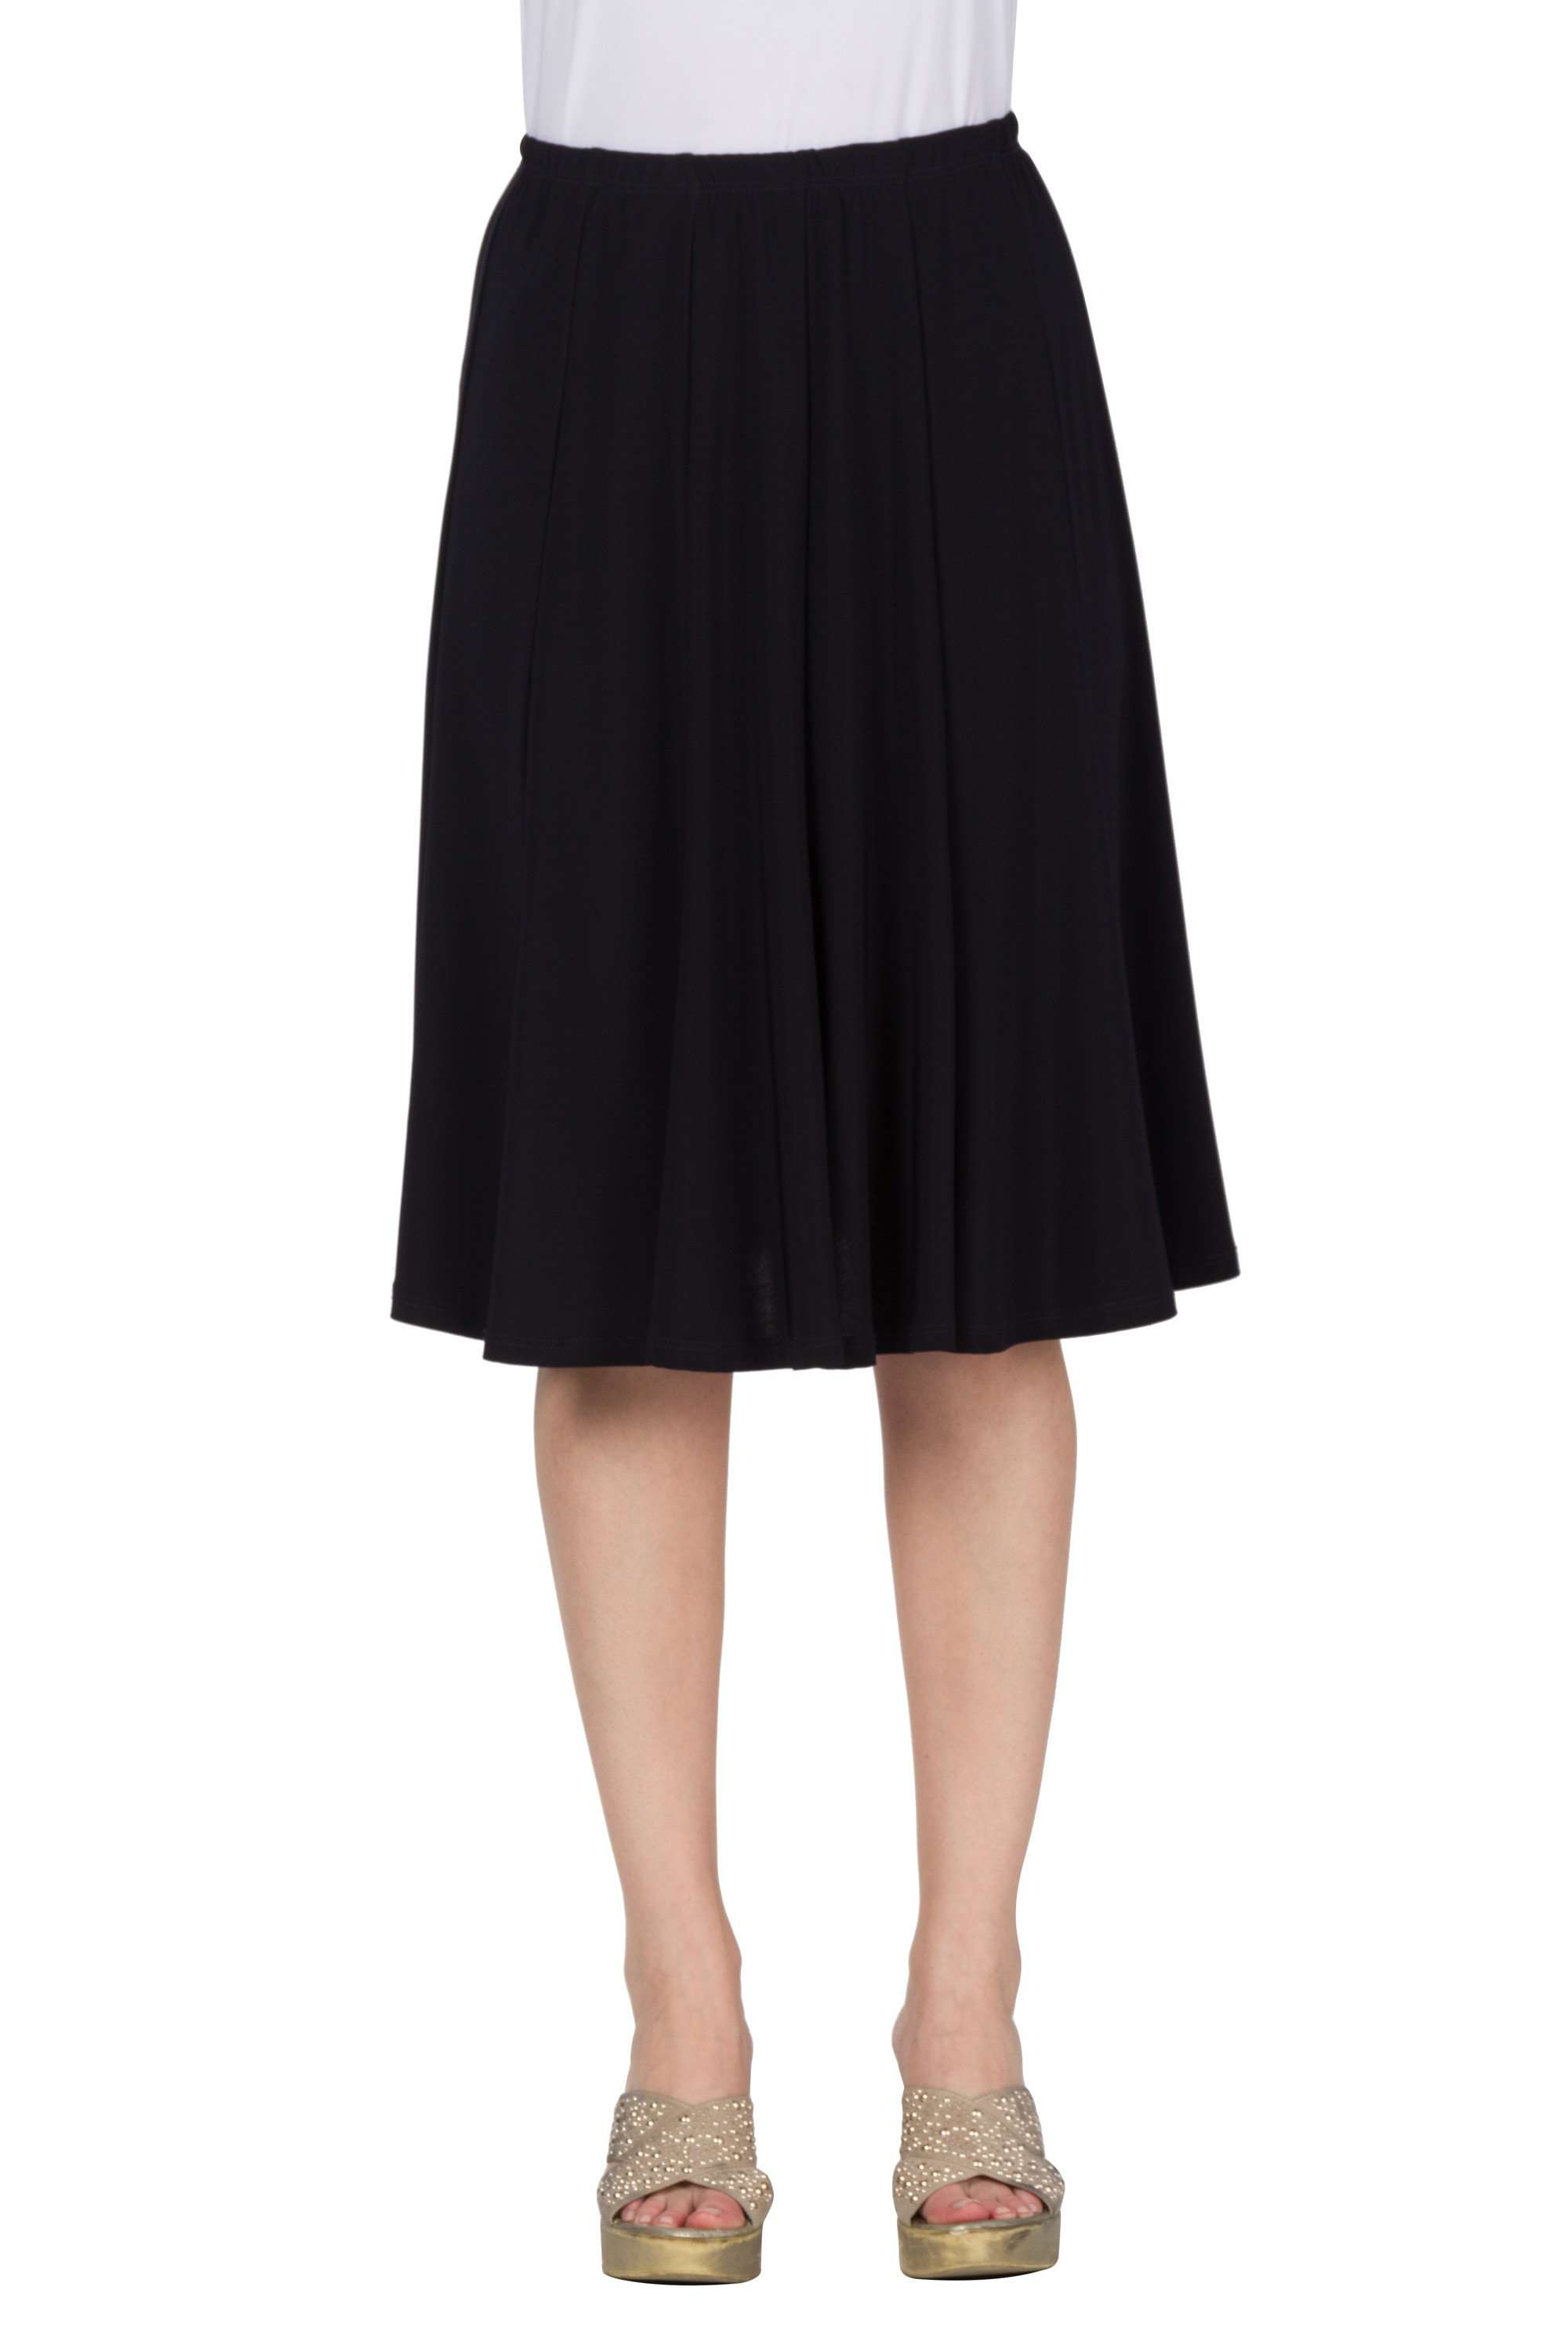 Women's Black Flared XL Skirt - Yvonne Marie - Yvonne Marie